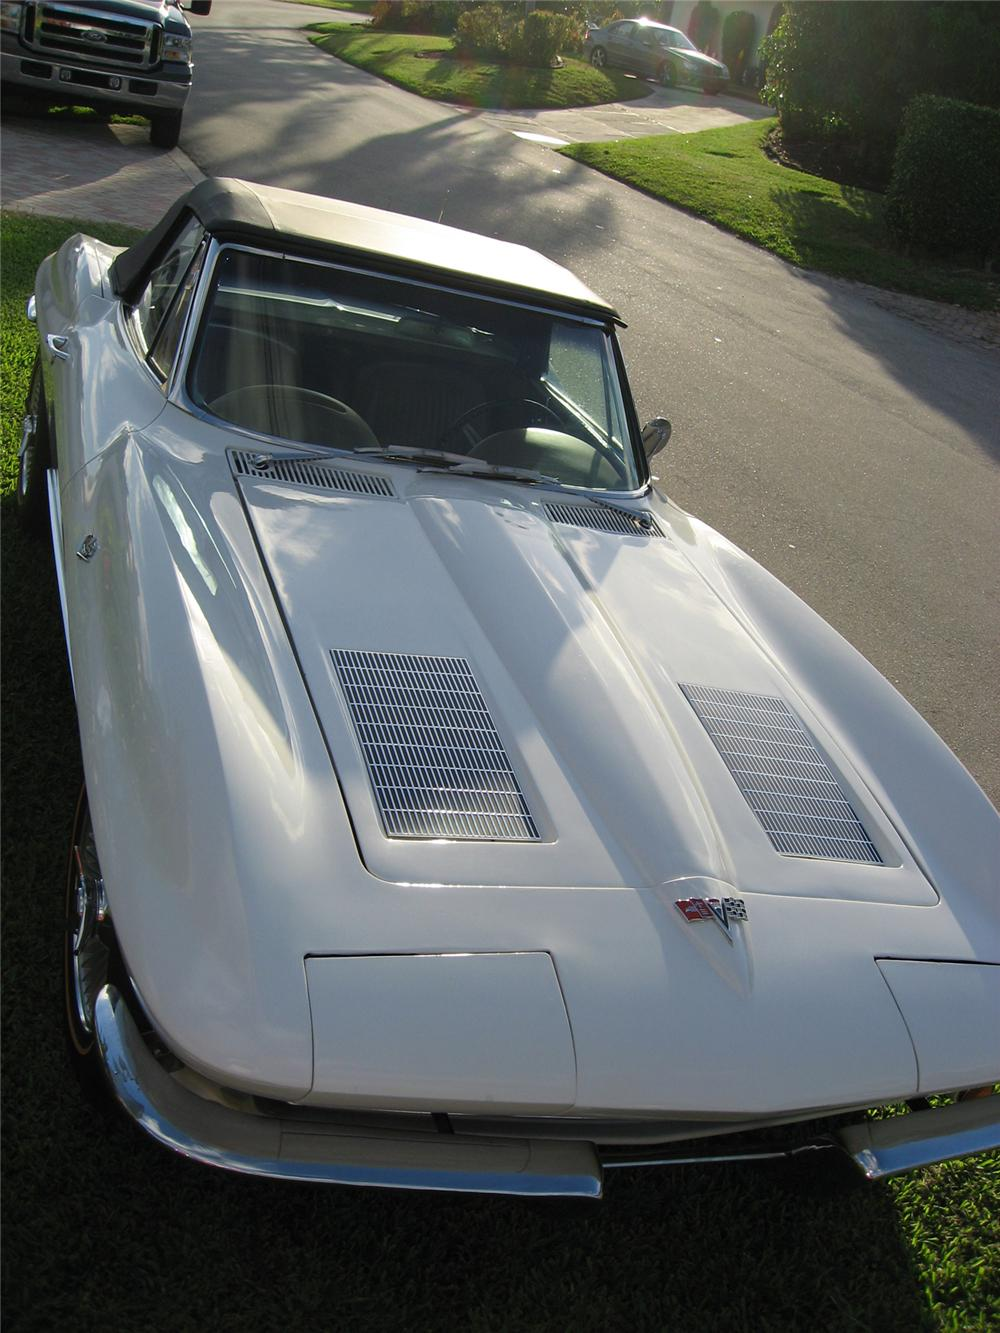 1963 CHEVROLET CORVETTE CONVERTIBLE - Misc 1 - 49619